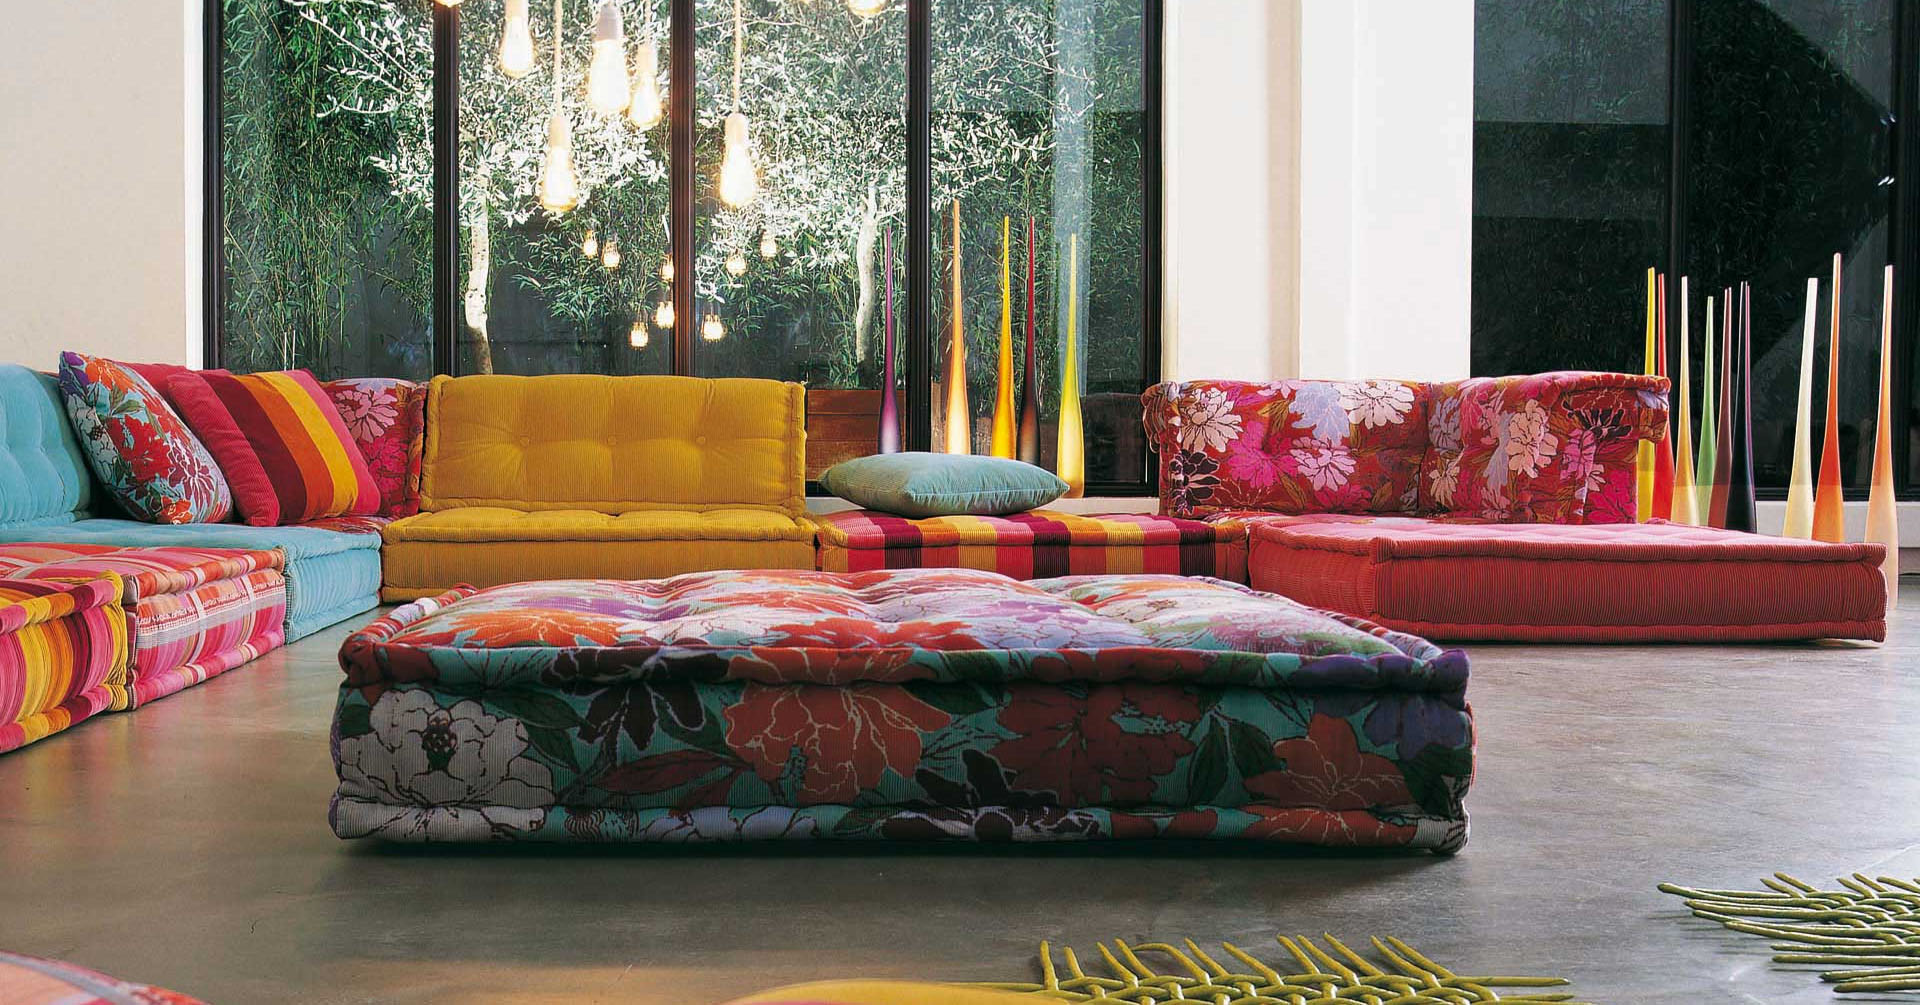 Canape Roche Bobois Of Roche Bobois Stylish And Functional Mah Jong Modular Sofas